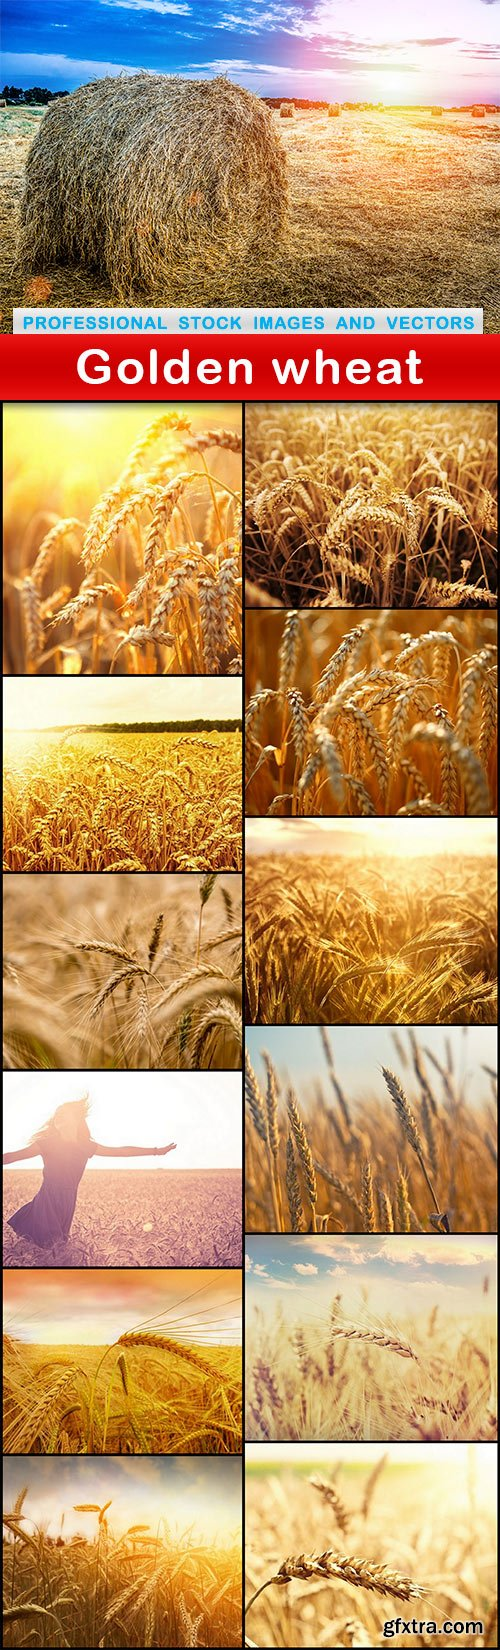 Golden wheat - 13 UHQ JPEG